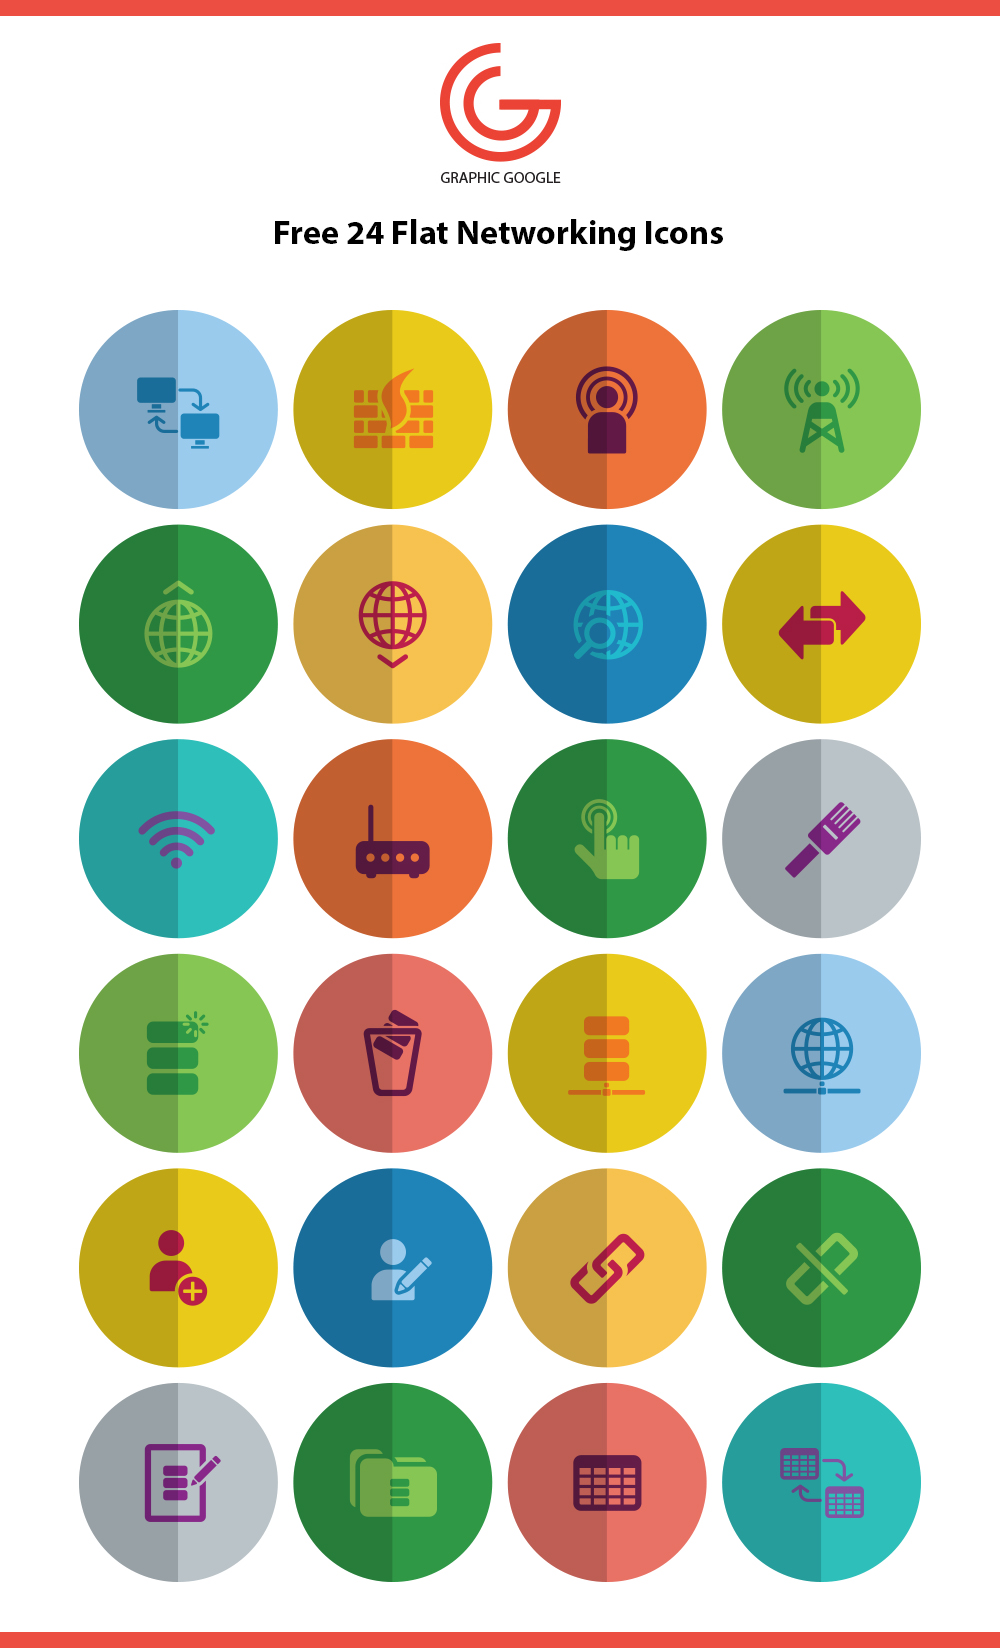 Free 24 Flat Networking Icons